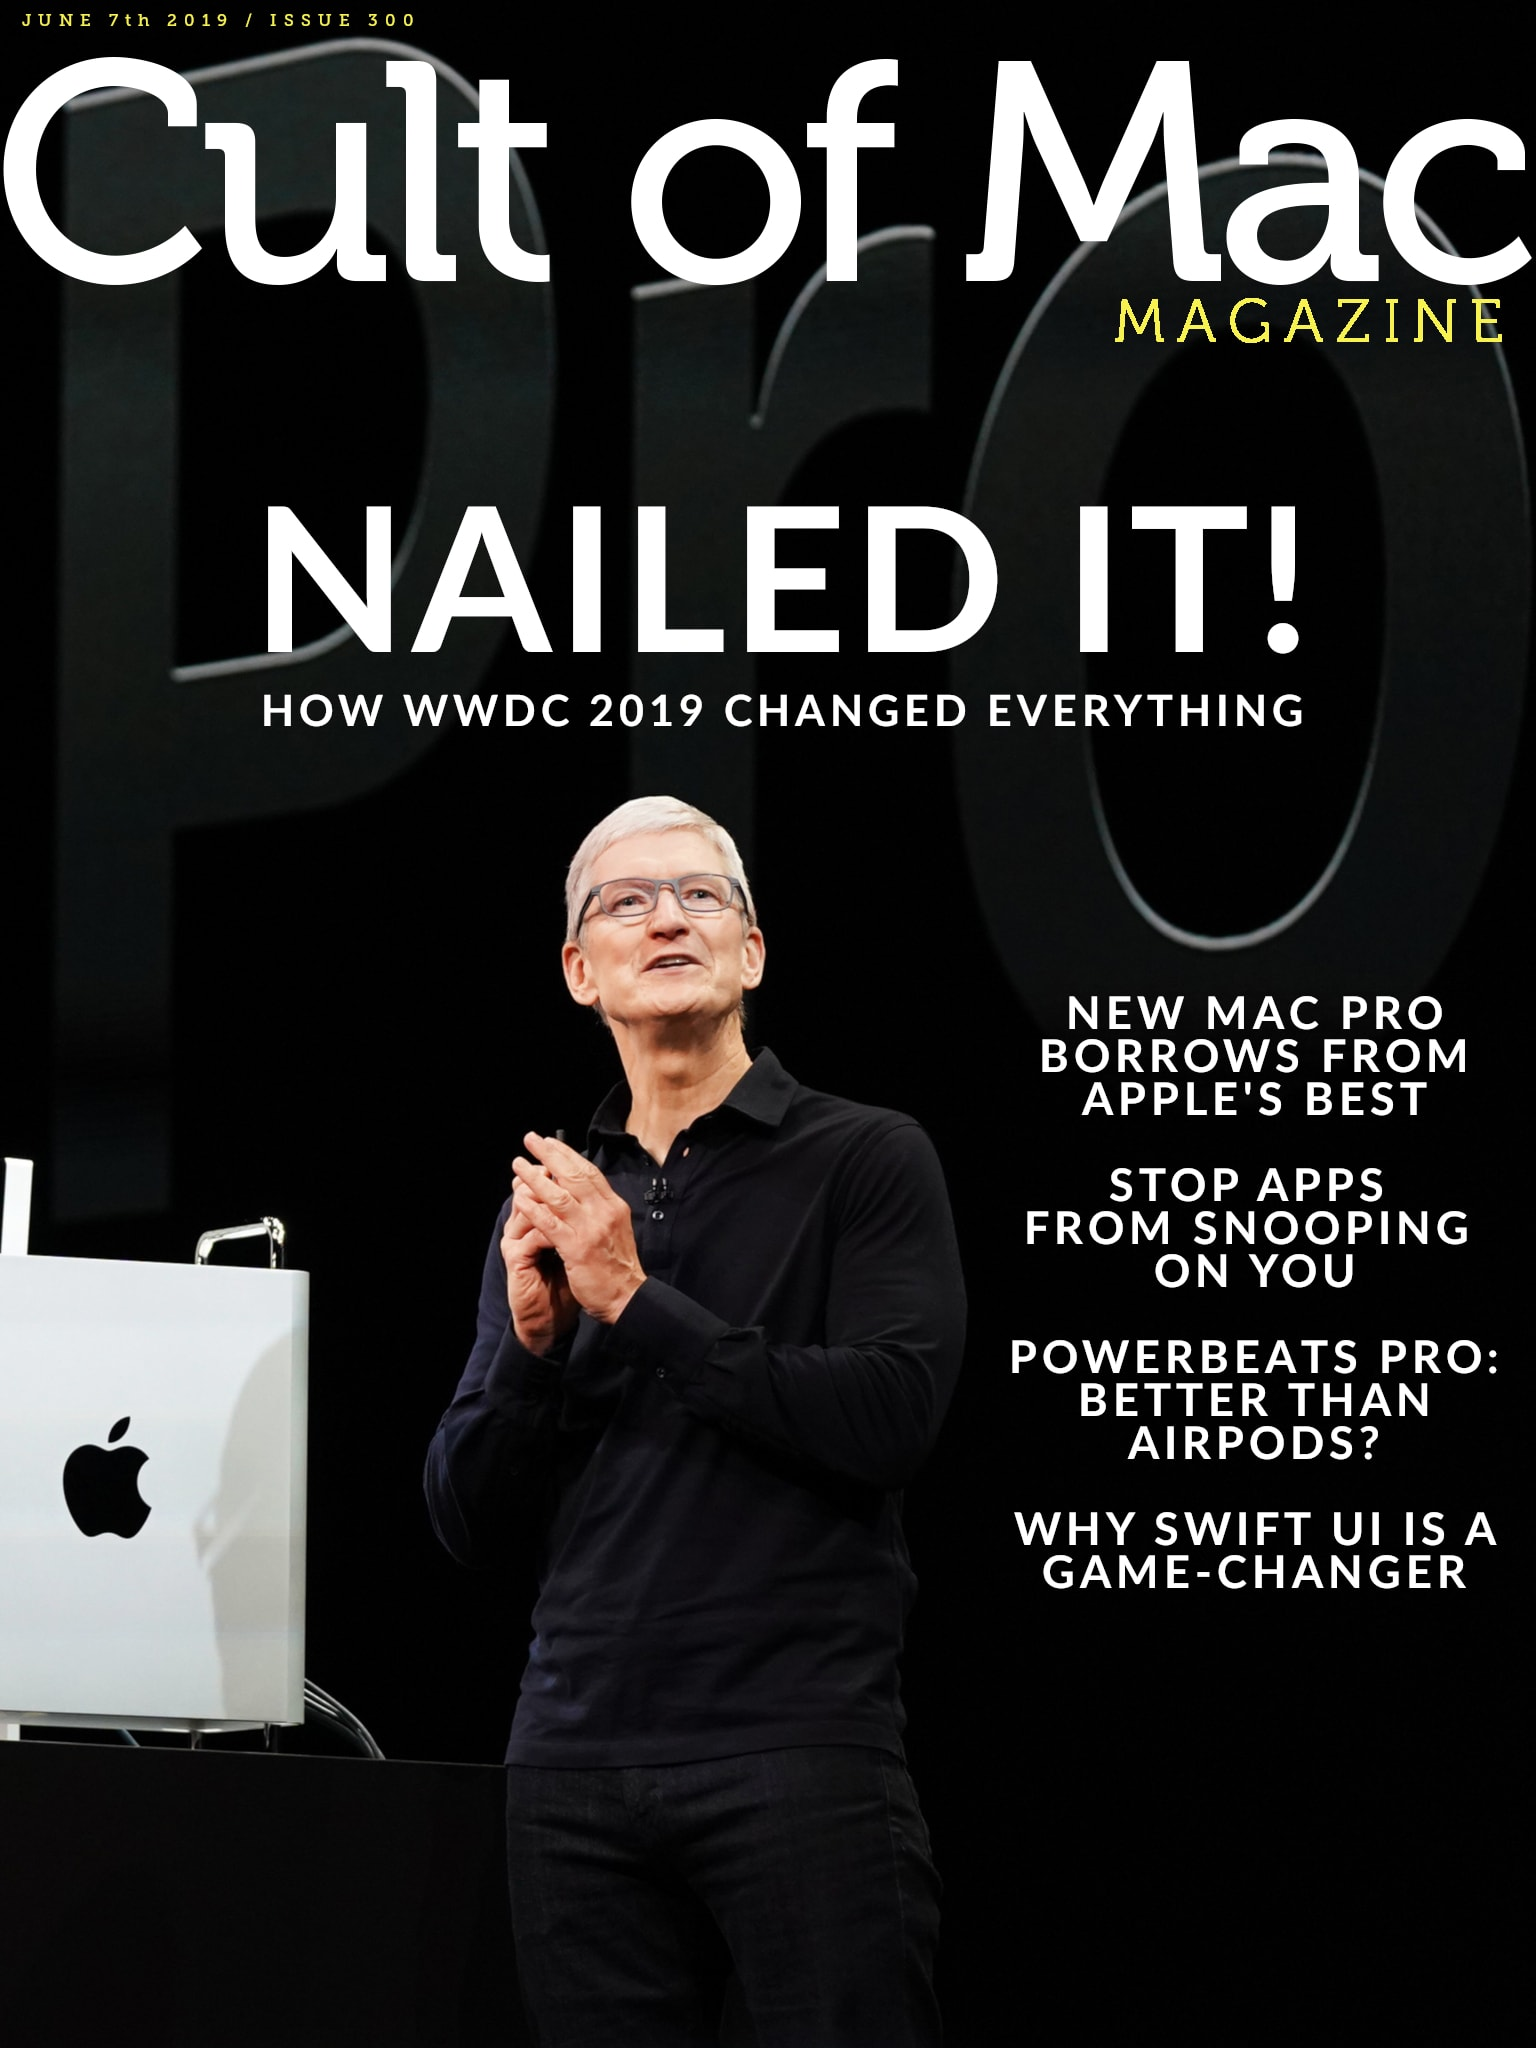 Cult of Mac Magazine No. 300 cover